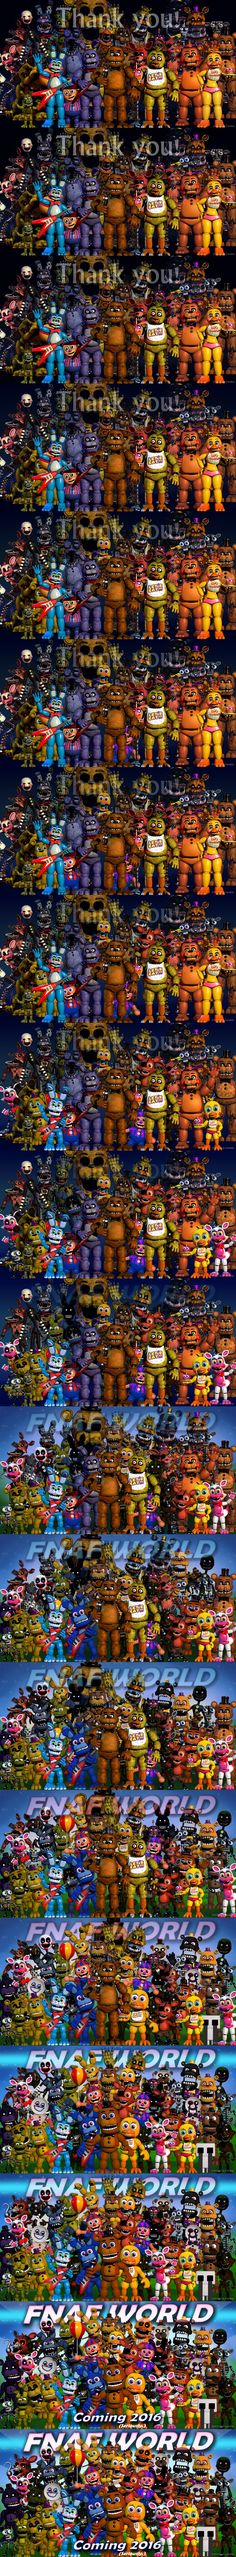 From 'Thank You' to 'FNAF World' - all 20 teasers by Solace-Stills on DeviantArt